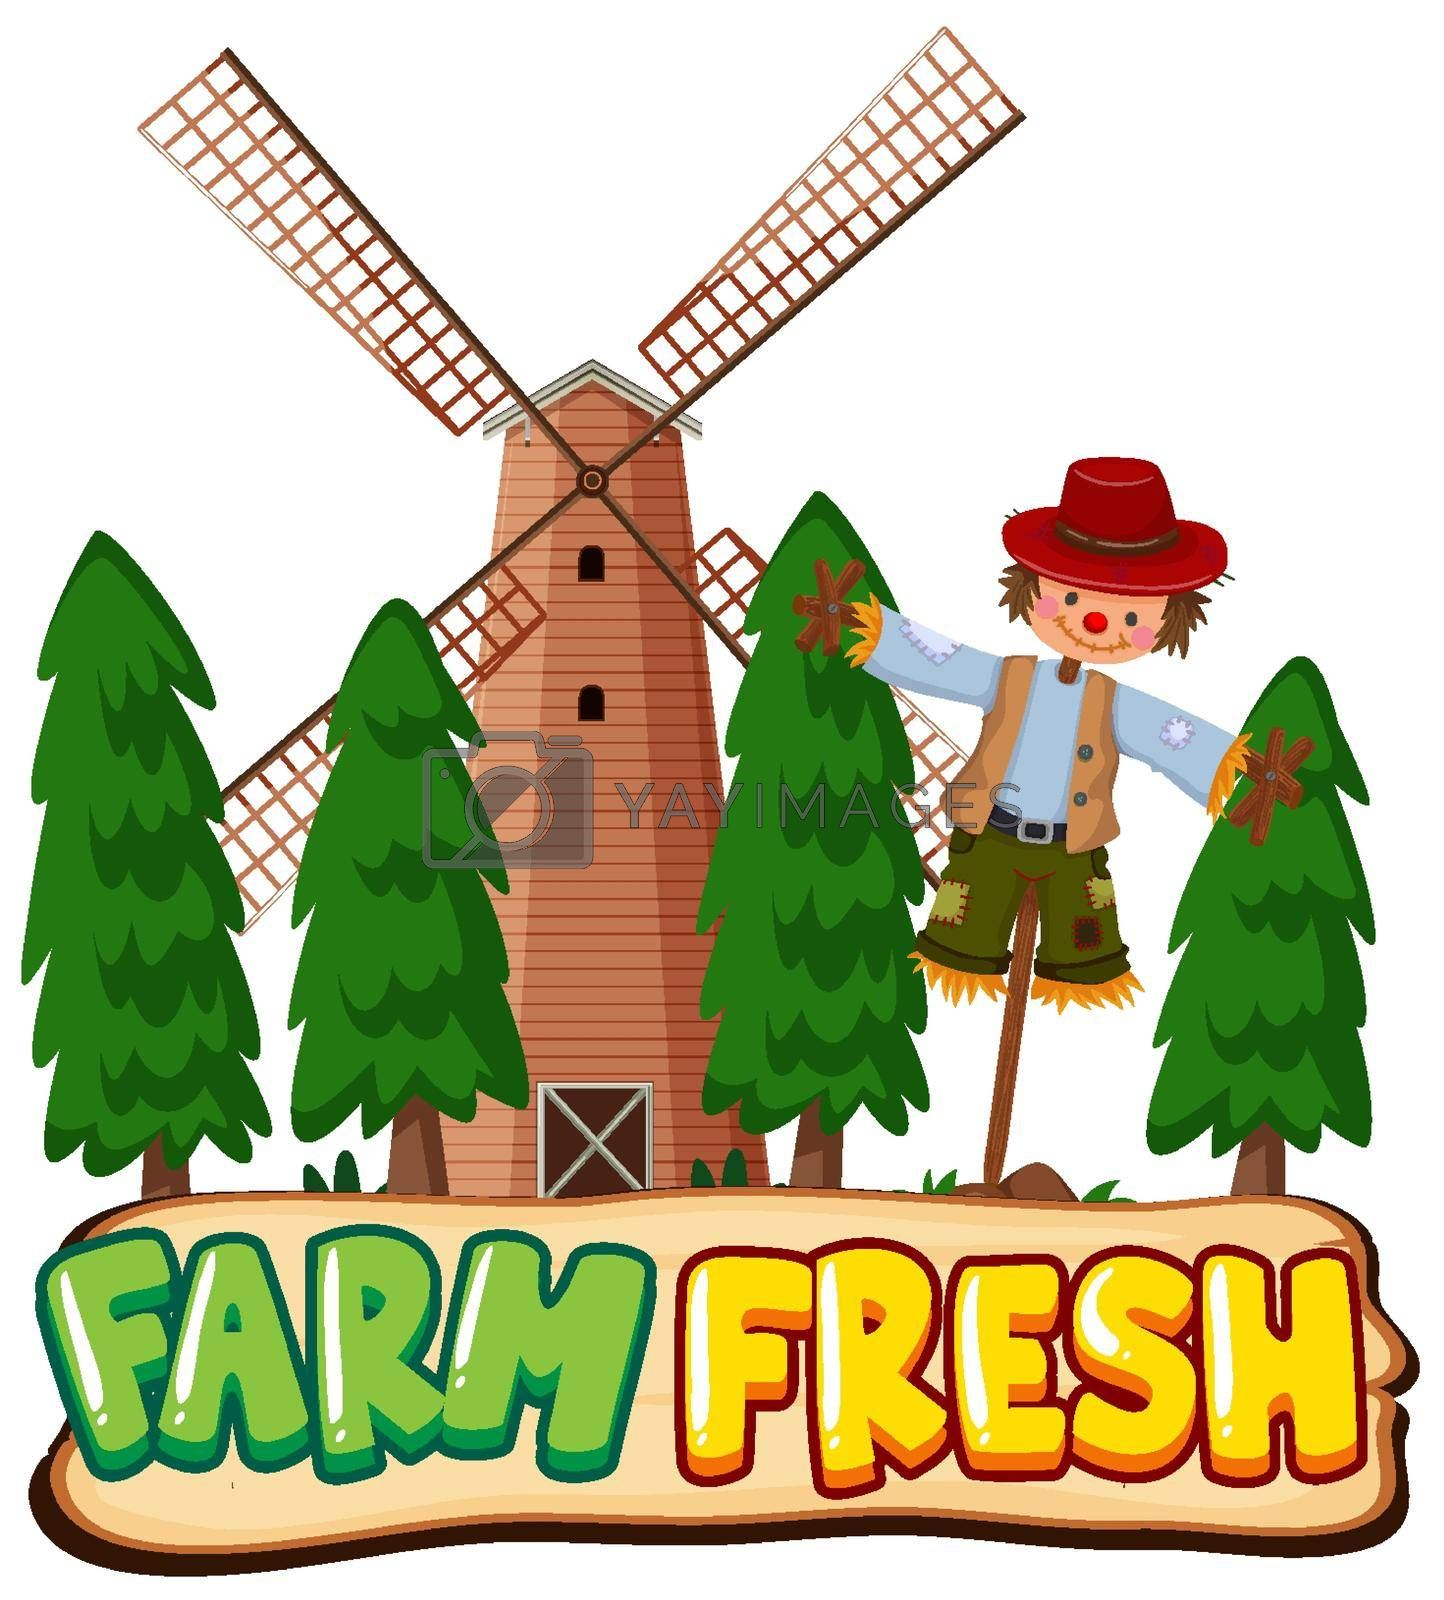 Font design for word farm fresh with scarecrow and windmill illustration